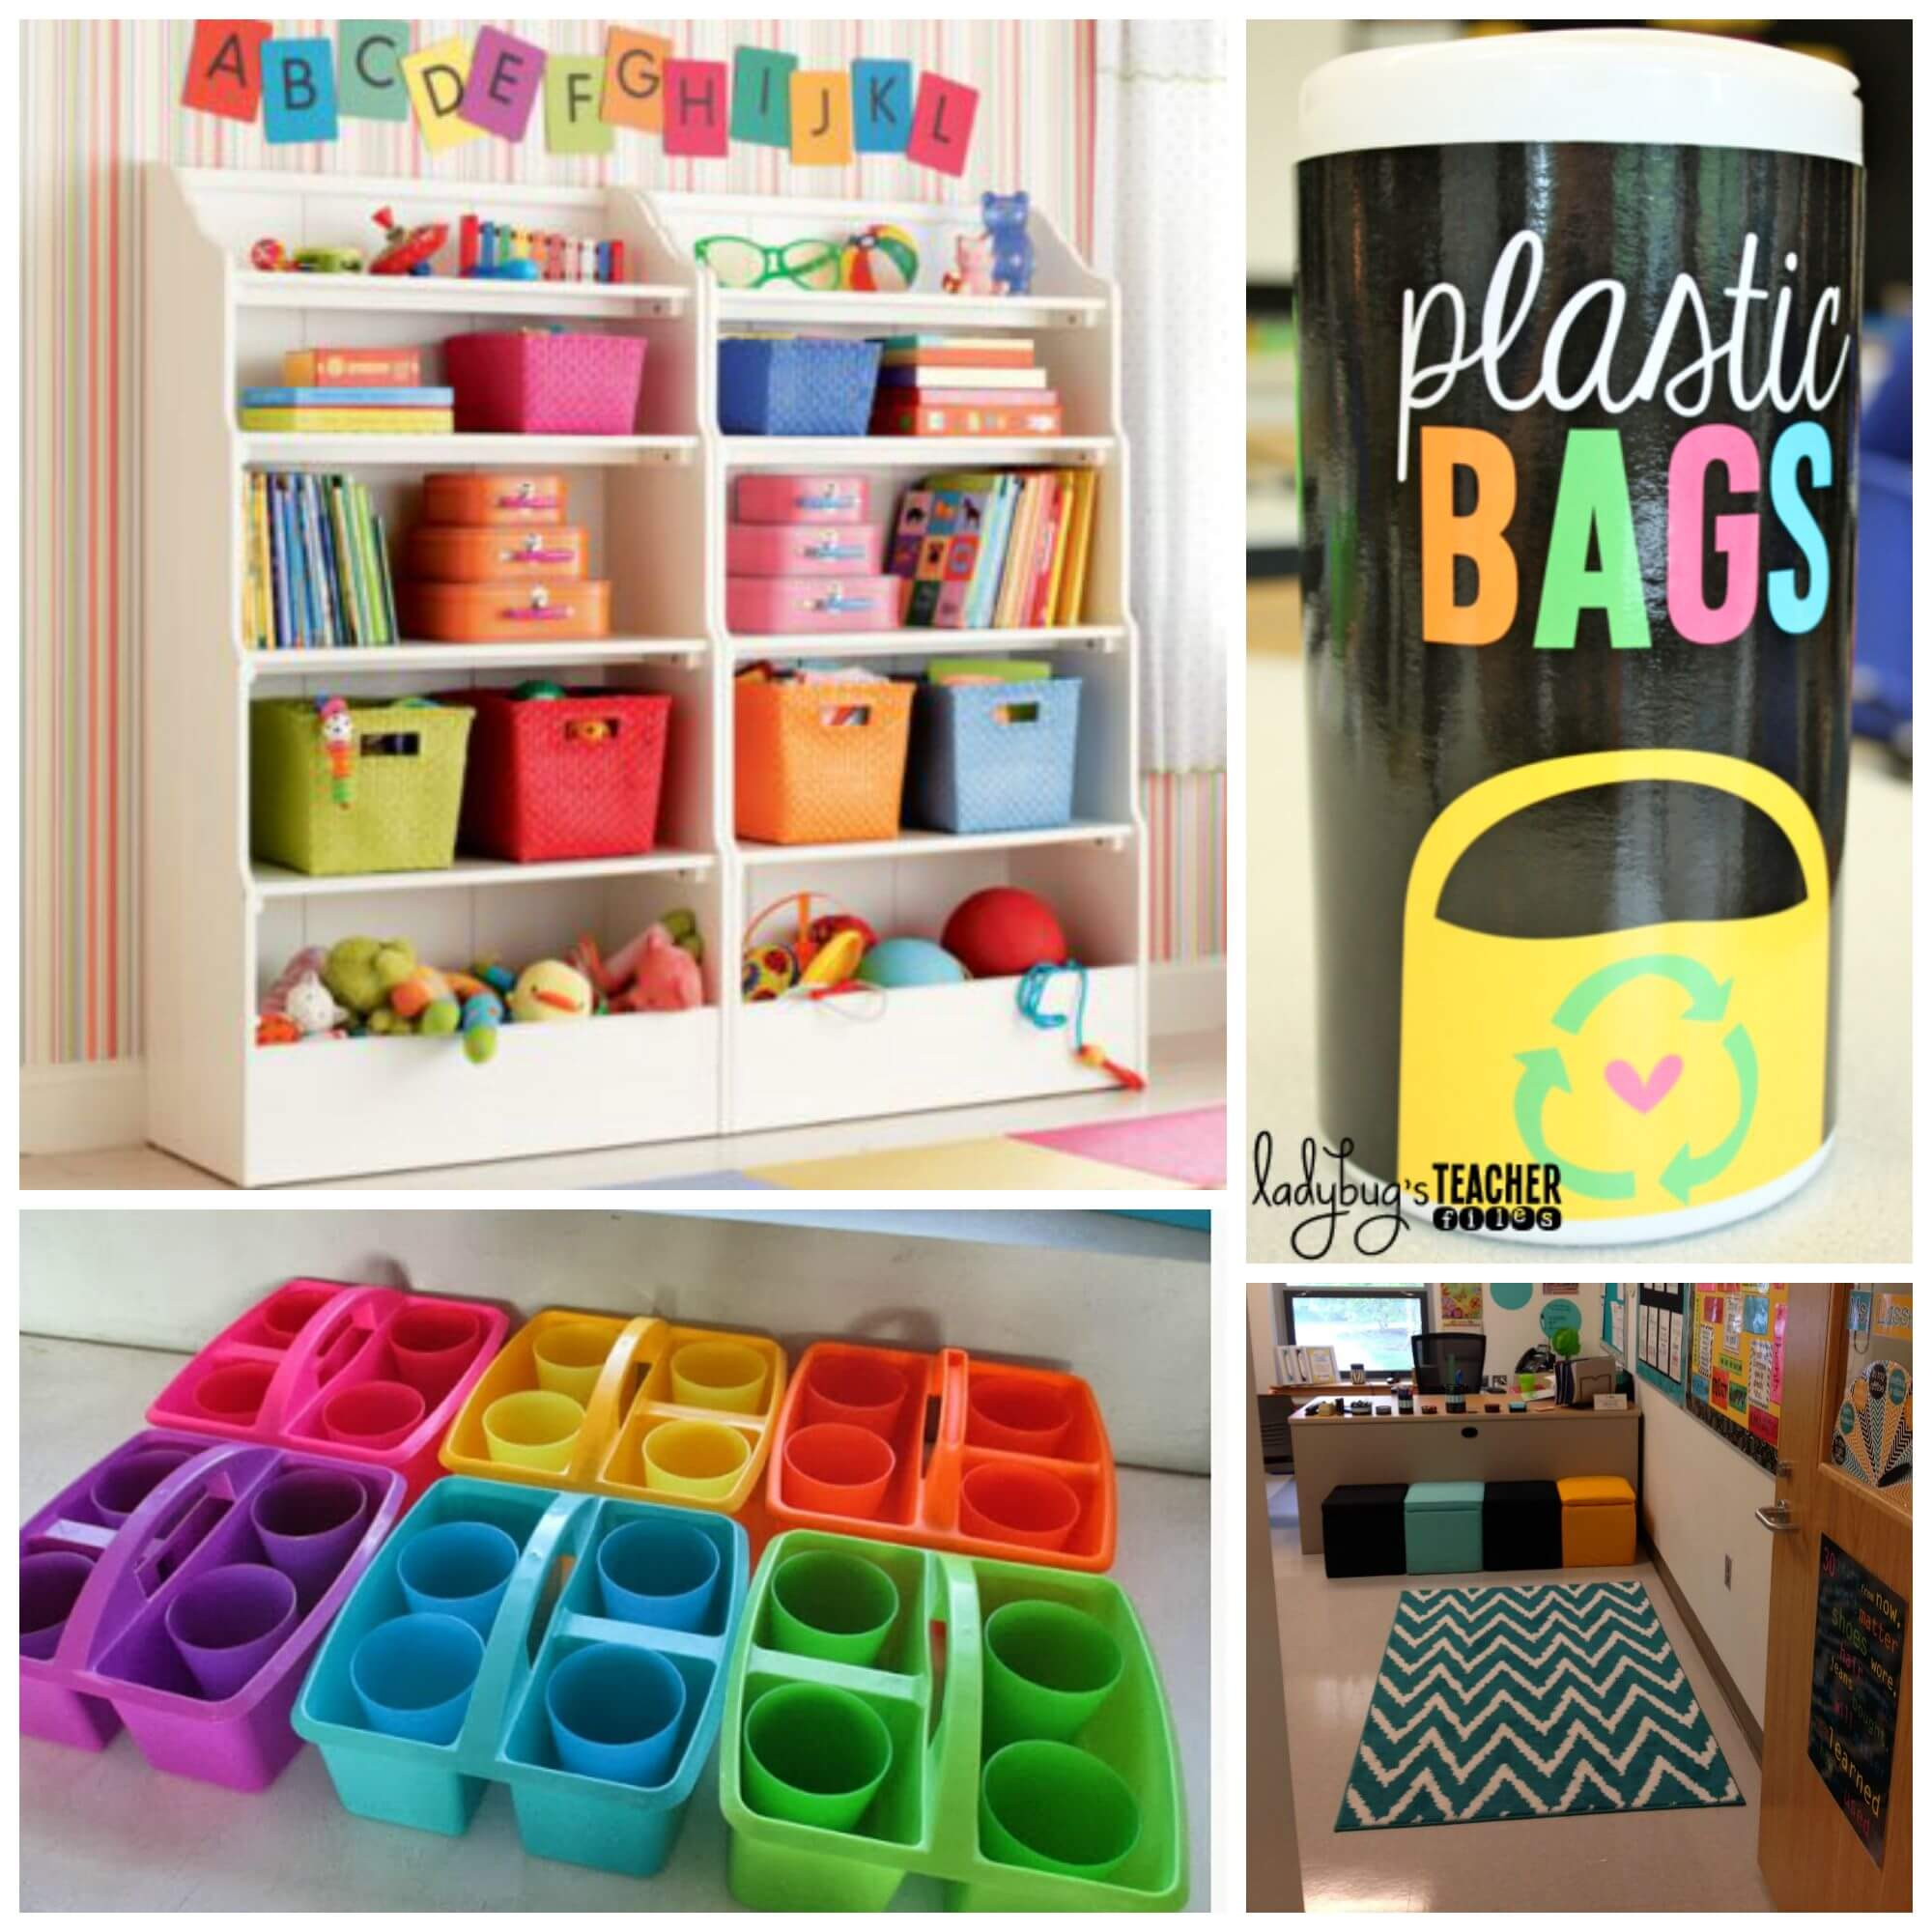 craft class ideas 20 inspiring classroom decoration ideas playdough to plato 1461